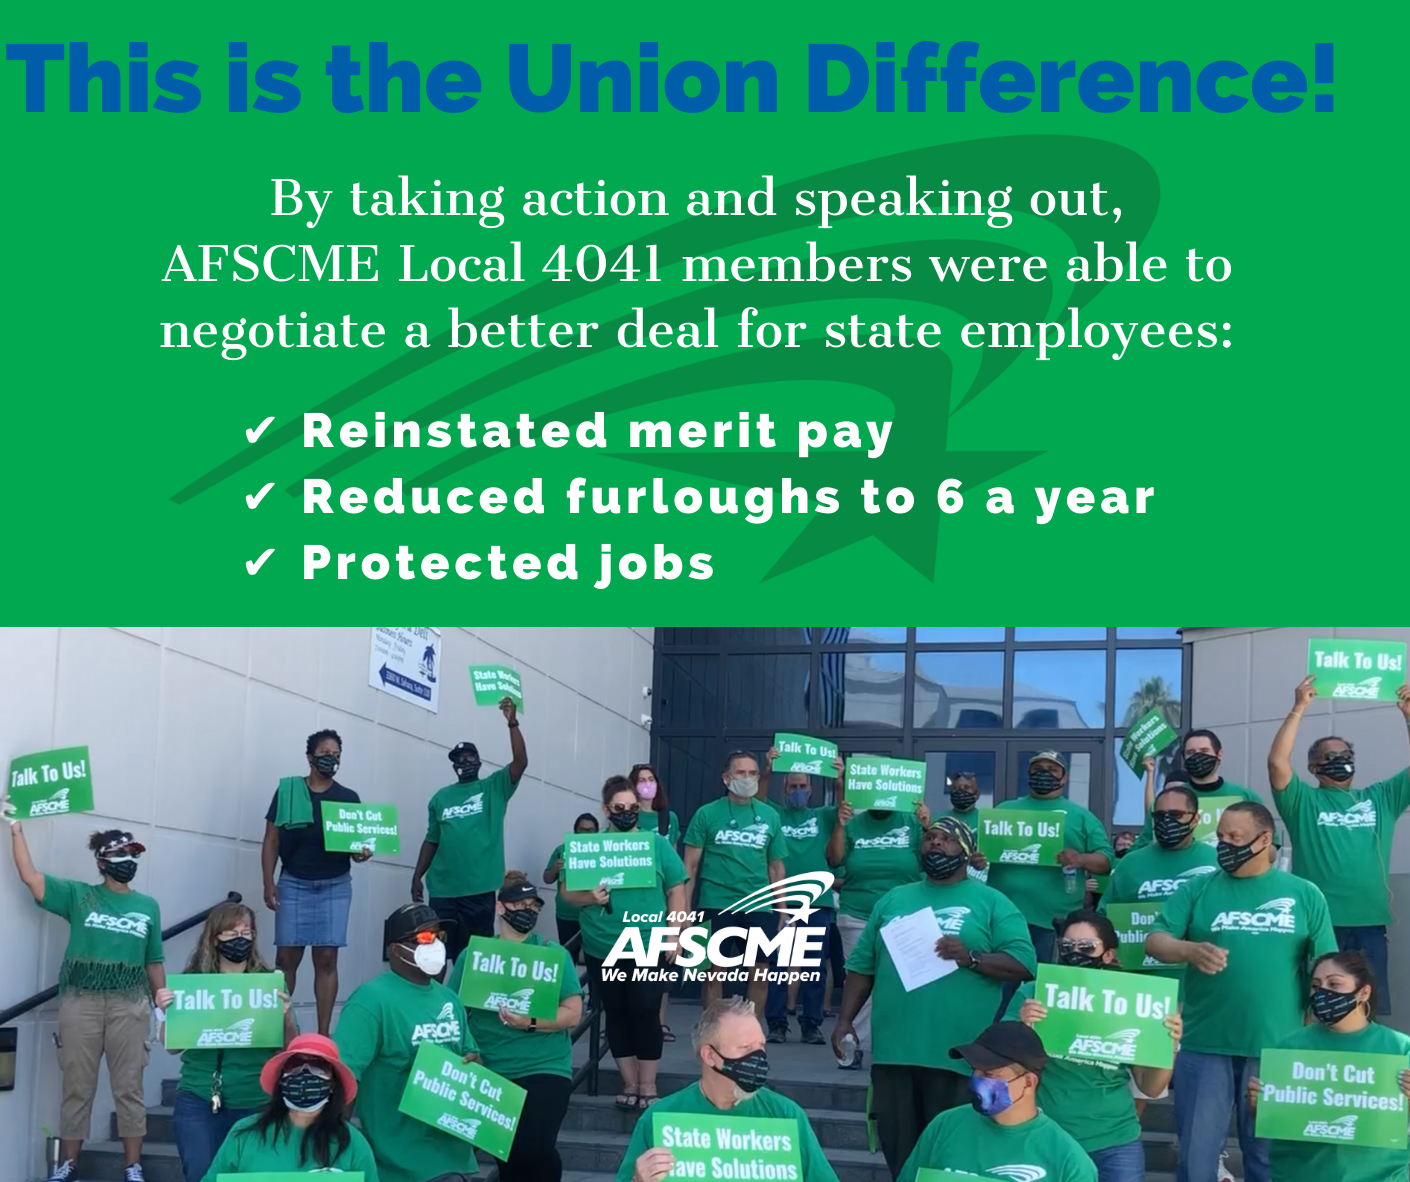 AFSCME Local 4041 members at a rally